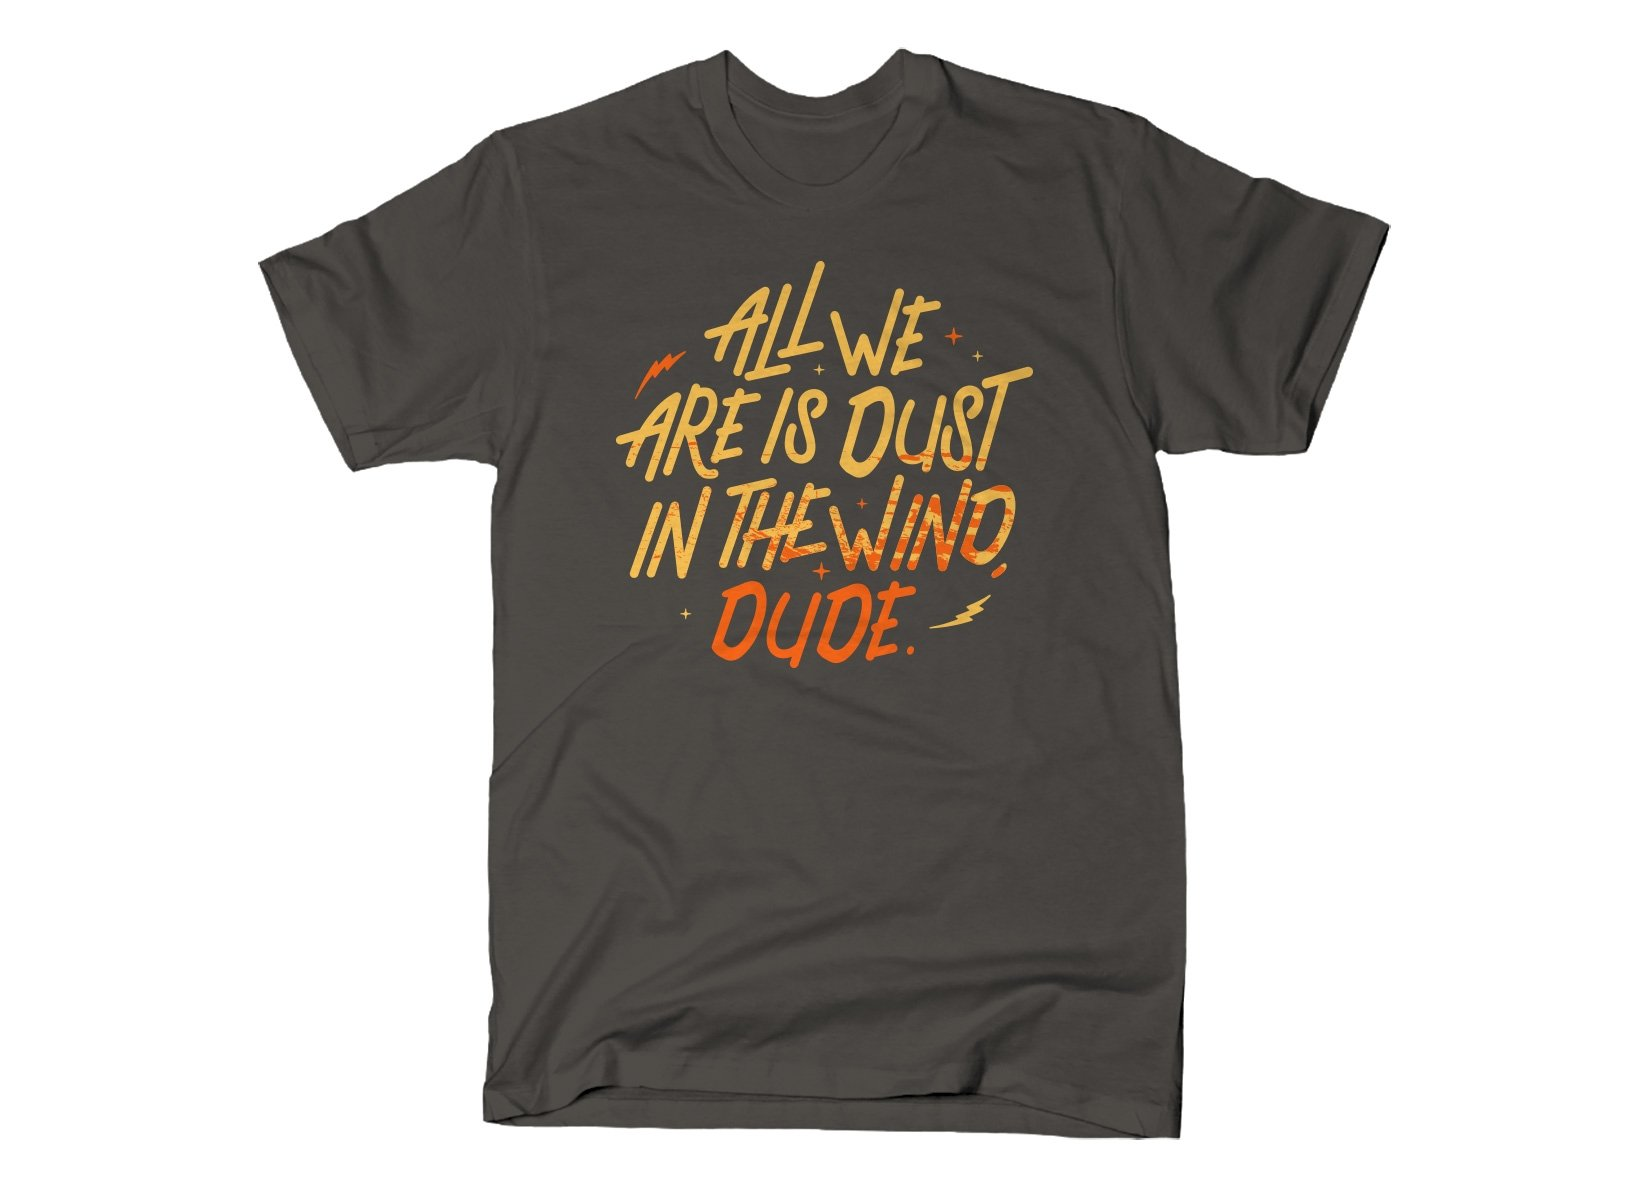 All We Are Is Dust In The Wind, Dude on Mens T-Shirt